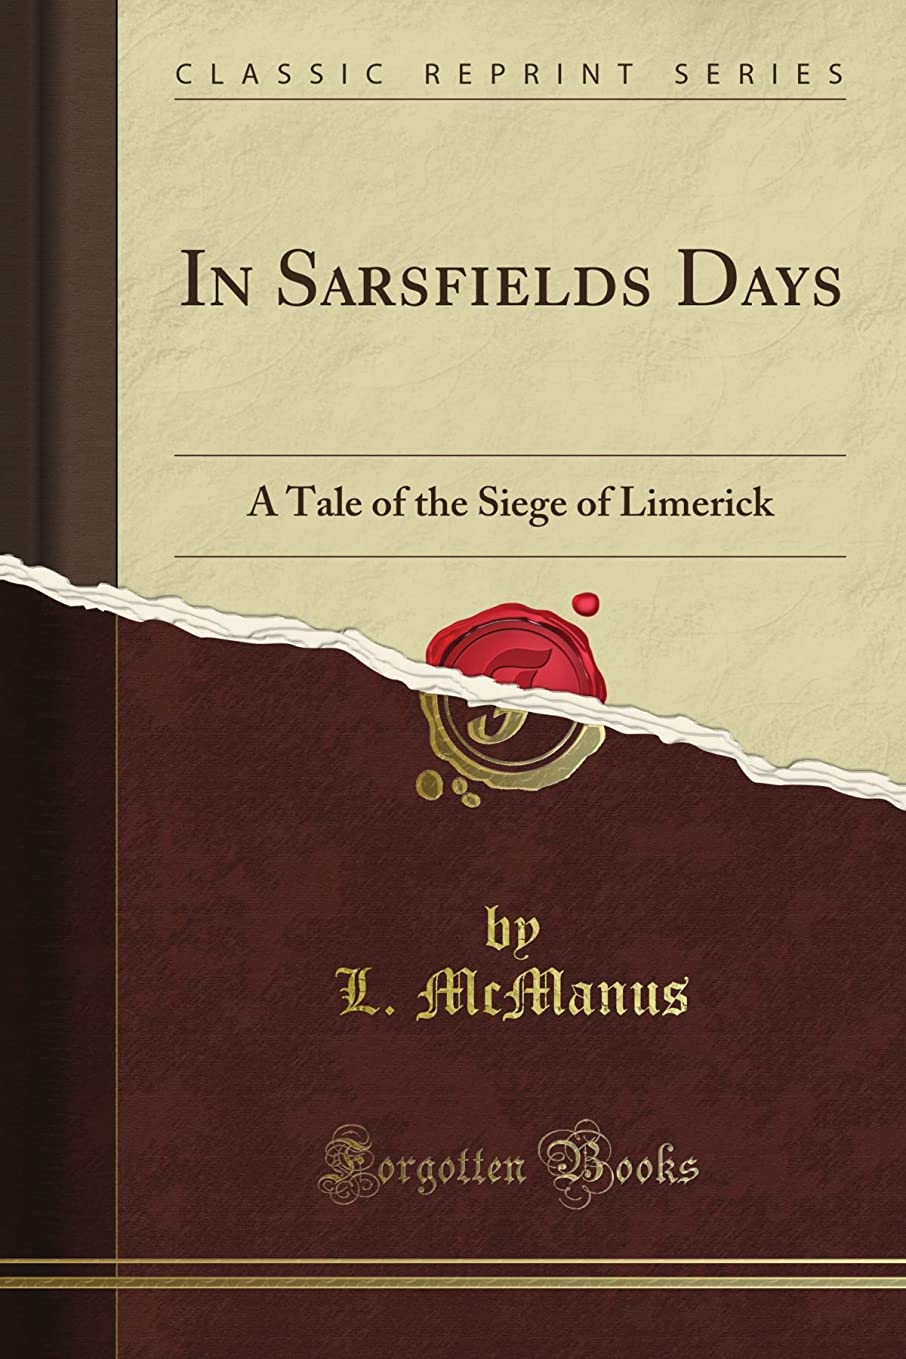 むさぼり食う分析する先In Sarsfield's Days: A Tale of the Siege of Limerick (Classic Reprint)